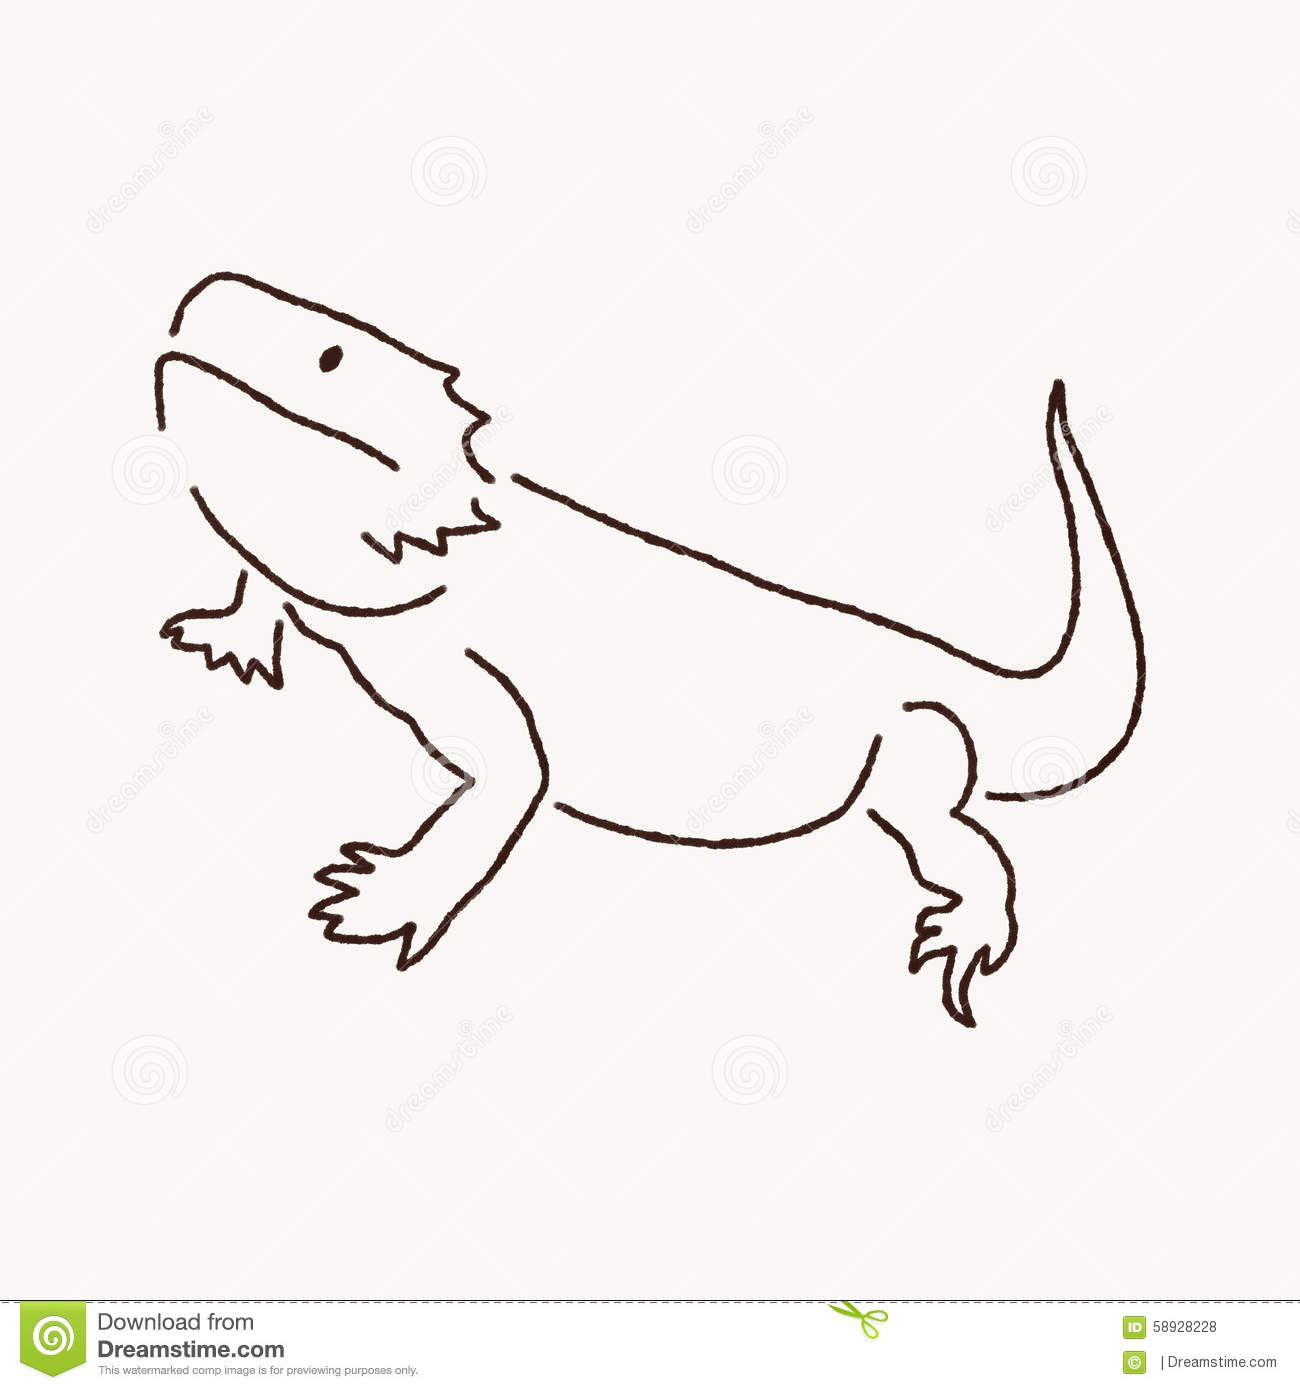 Bearded Dragon clipart head Bearded #79 clipart dragon Dragon